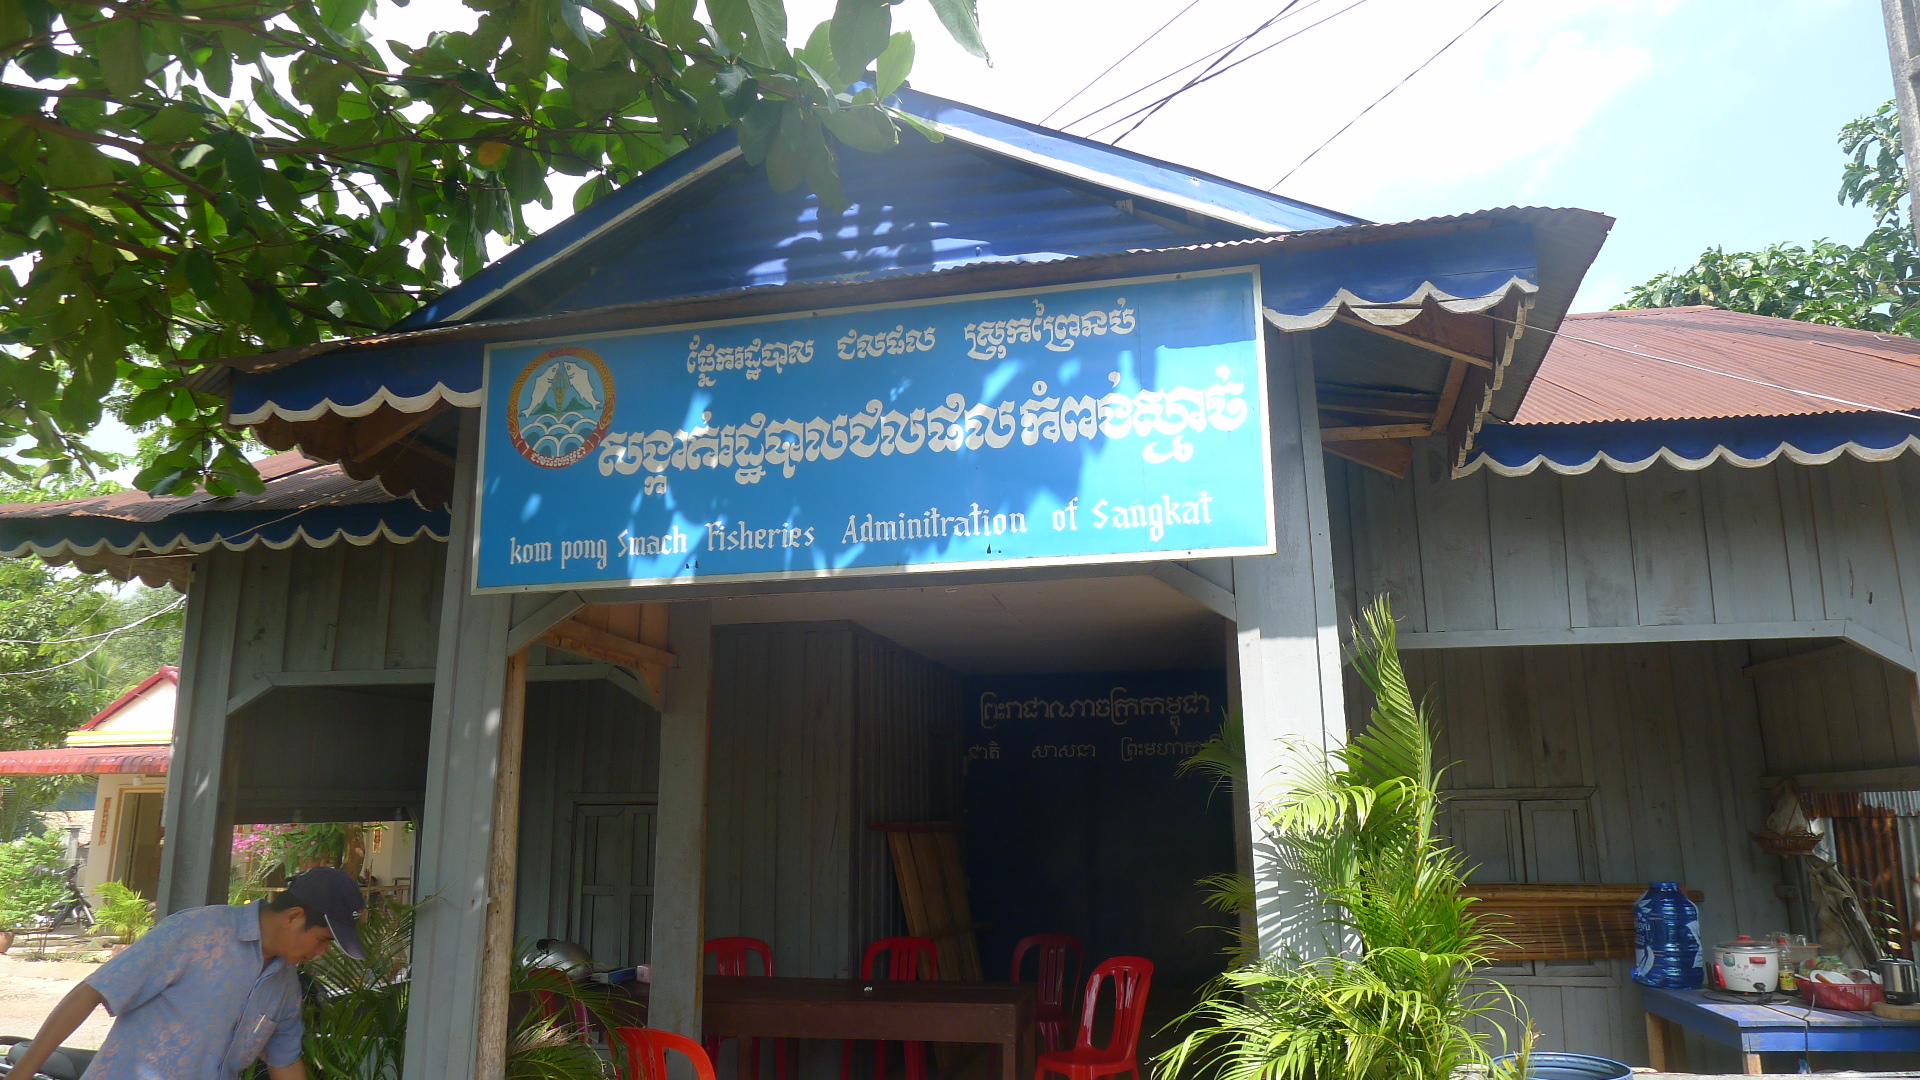 Building hosting the Kampong Smach Fisheries Administration